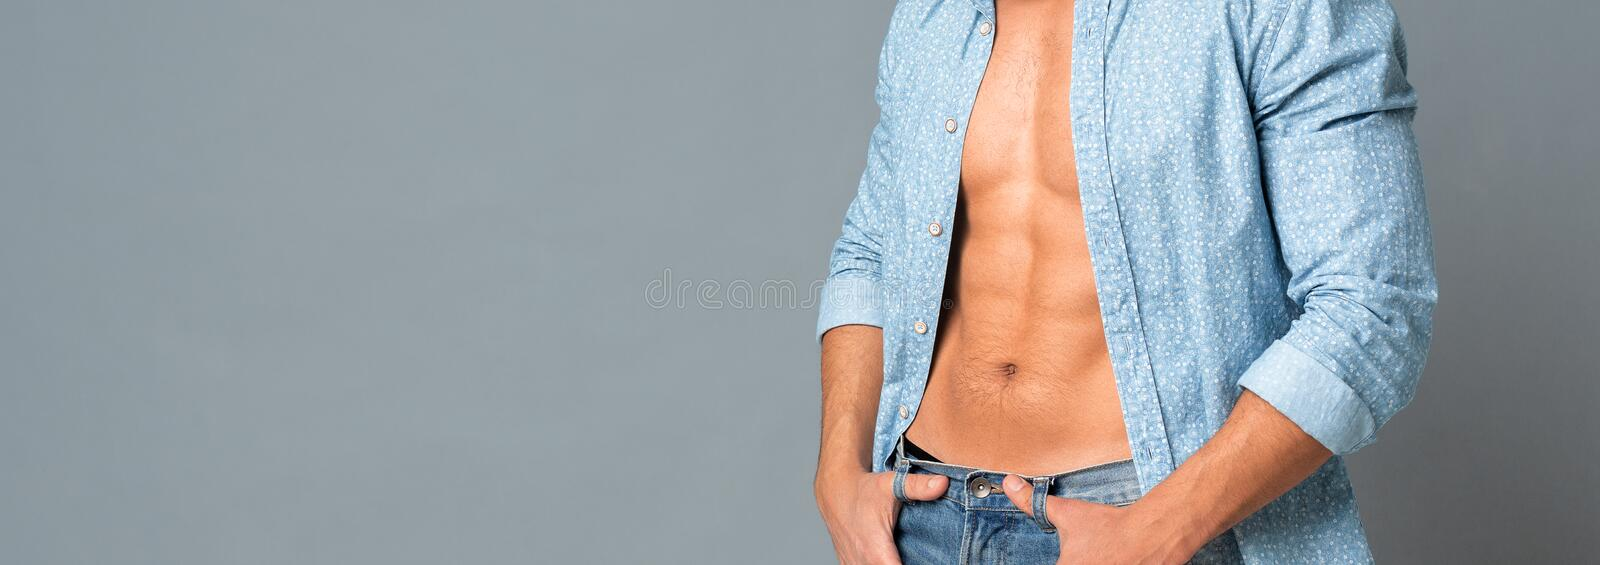 Unrecognizable Muscular Man In Unbuttoned Shirt Showing His Perfect Abs. Muscular Male Model In Unbuttoned Shirt Showing His Naked Torso And Perfect Abs royalty free stock image